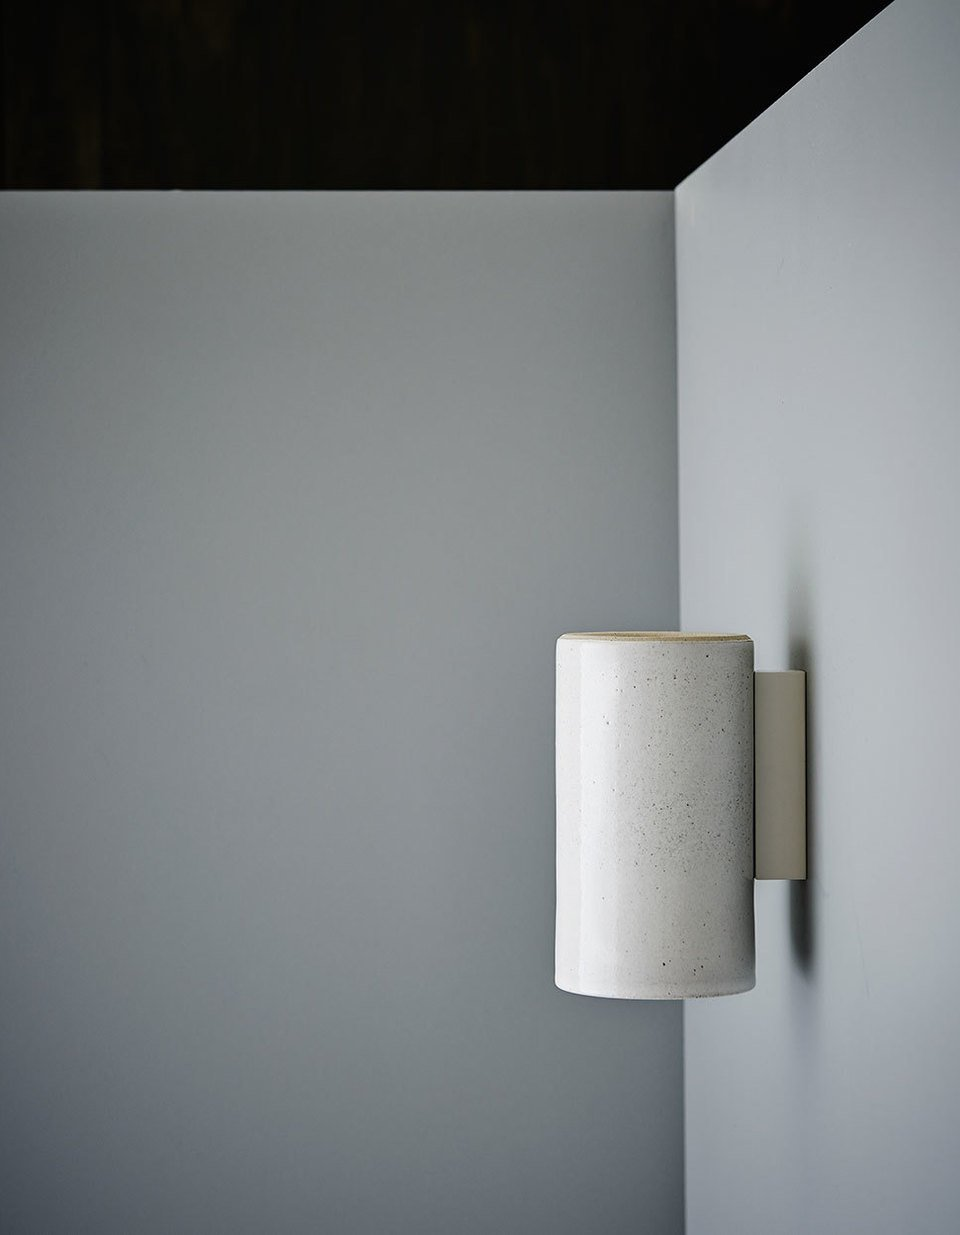 Earth Light Architectural Wall Lamps By Anchor Ceramics Ceramic Wall Lights Wall Lights Ceramic Light